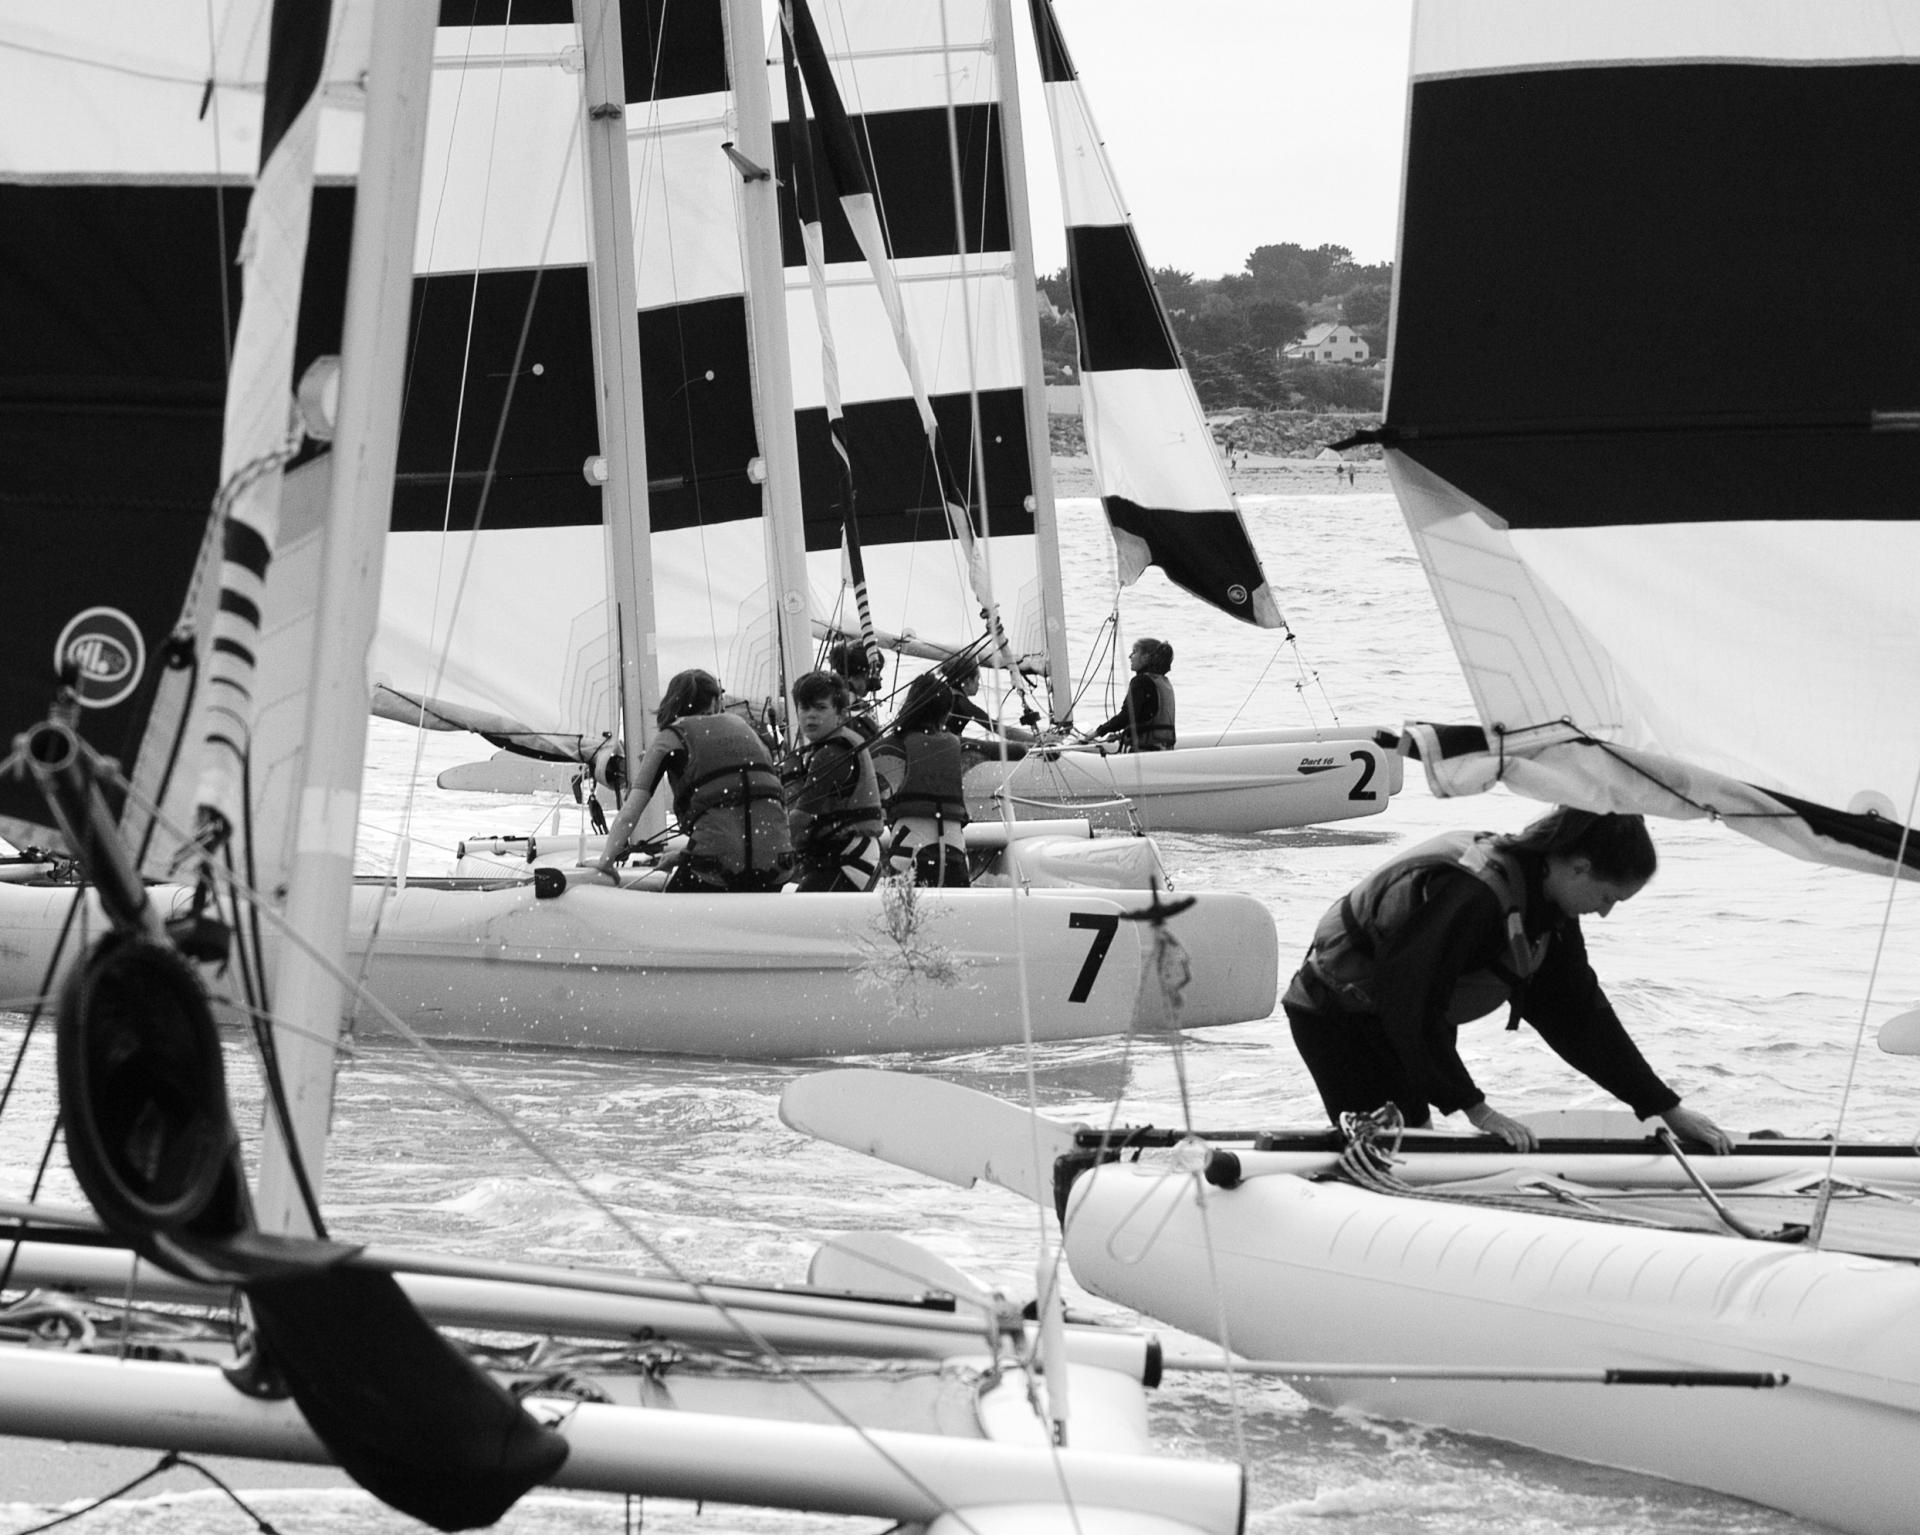 Club Nautique du Rohu - catamaran sailing